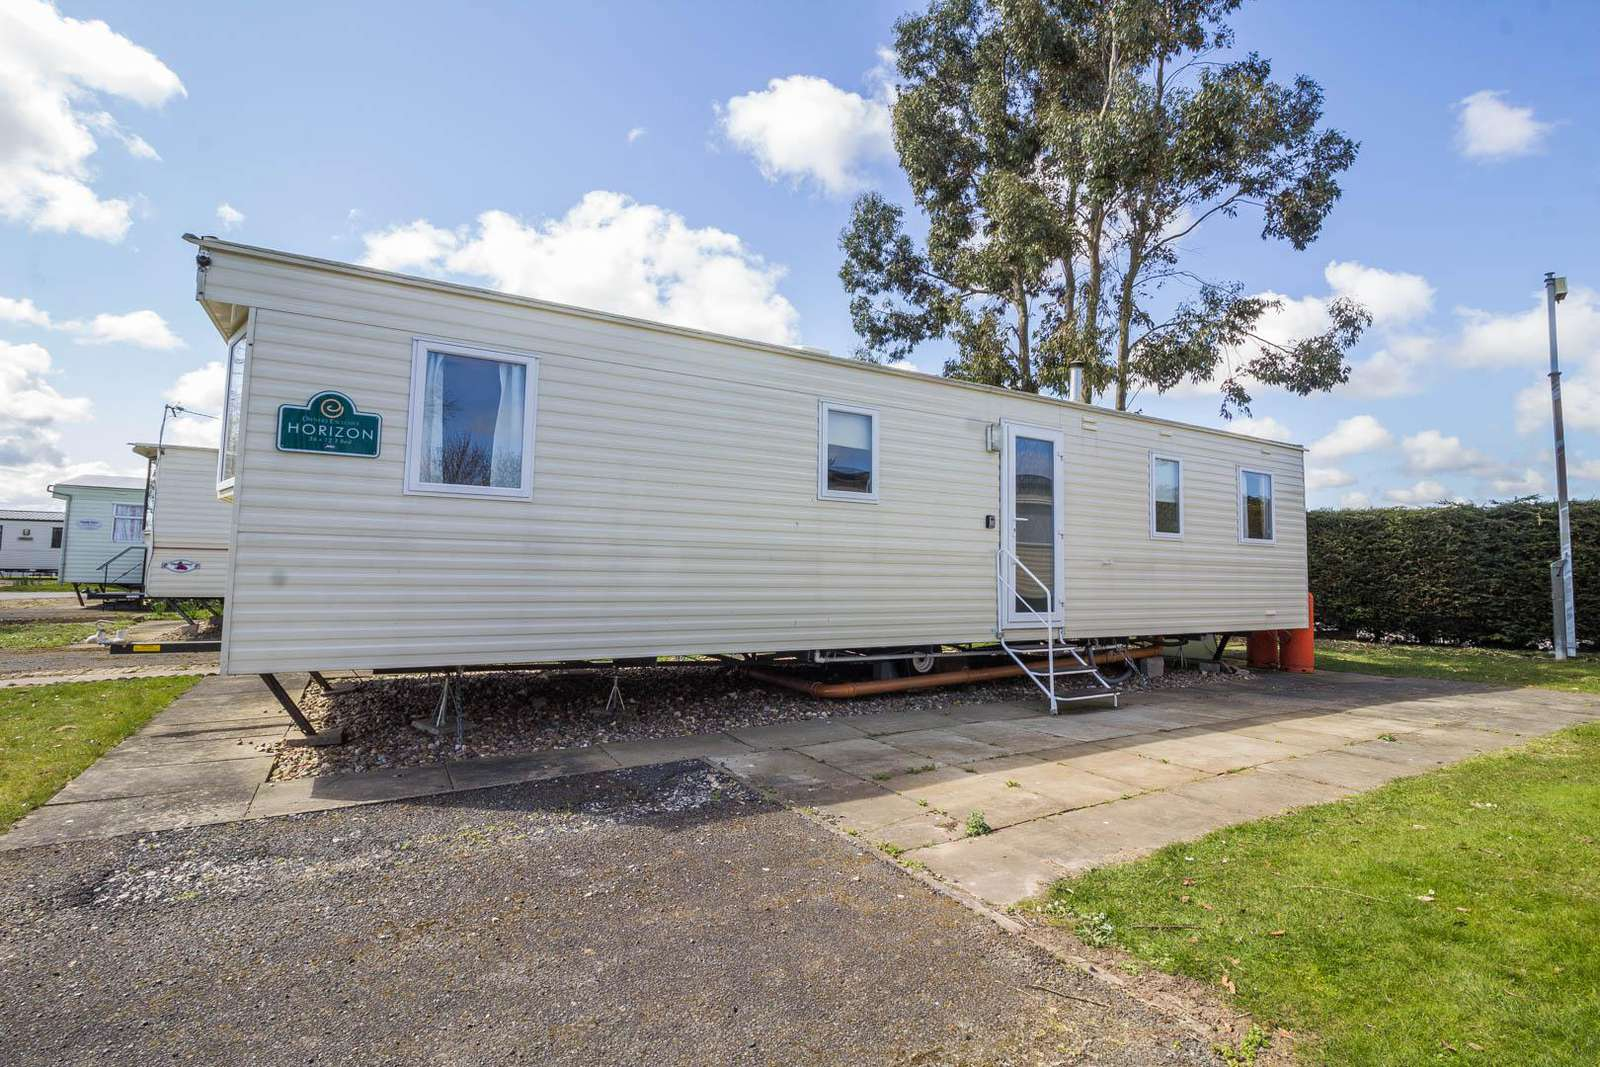 33036S – The Springs area, 3 bed, 8 berth caravan close to amenities. Ruby rated. - property